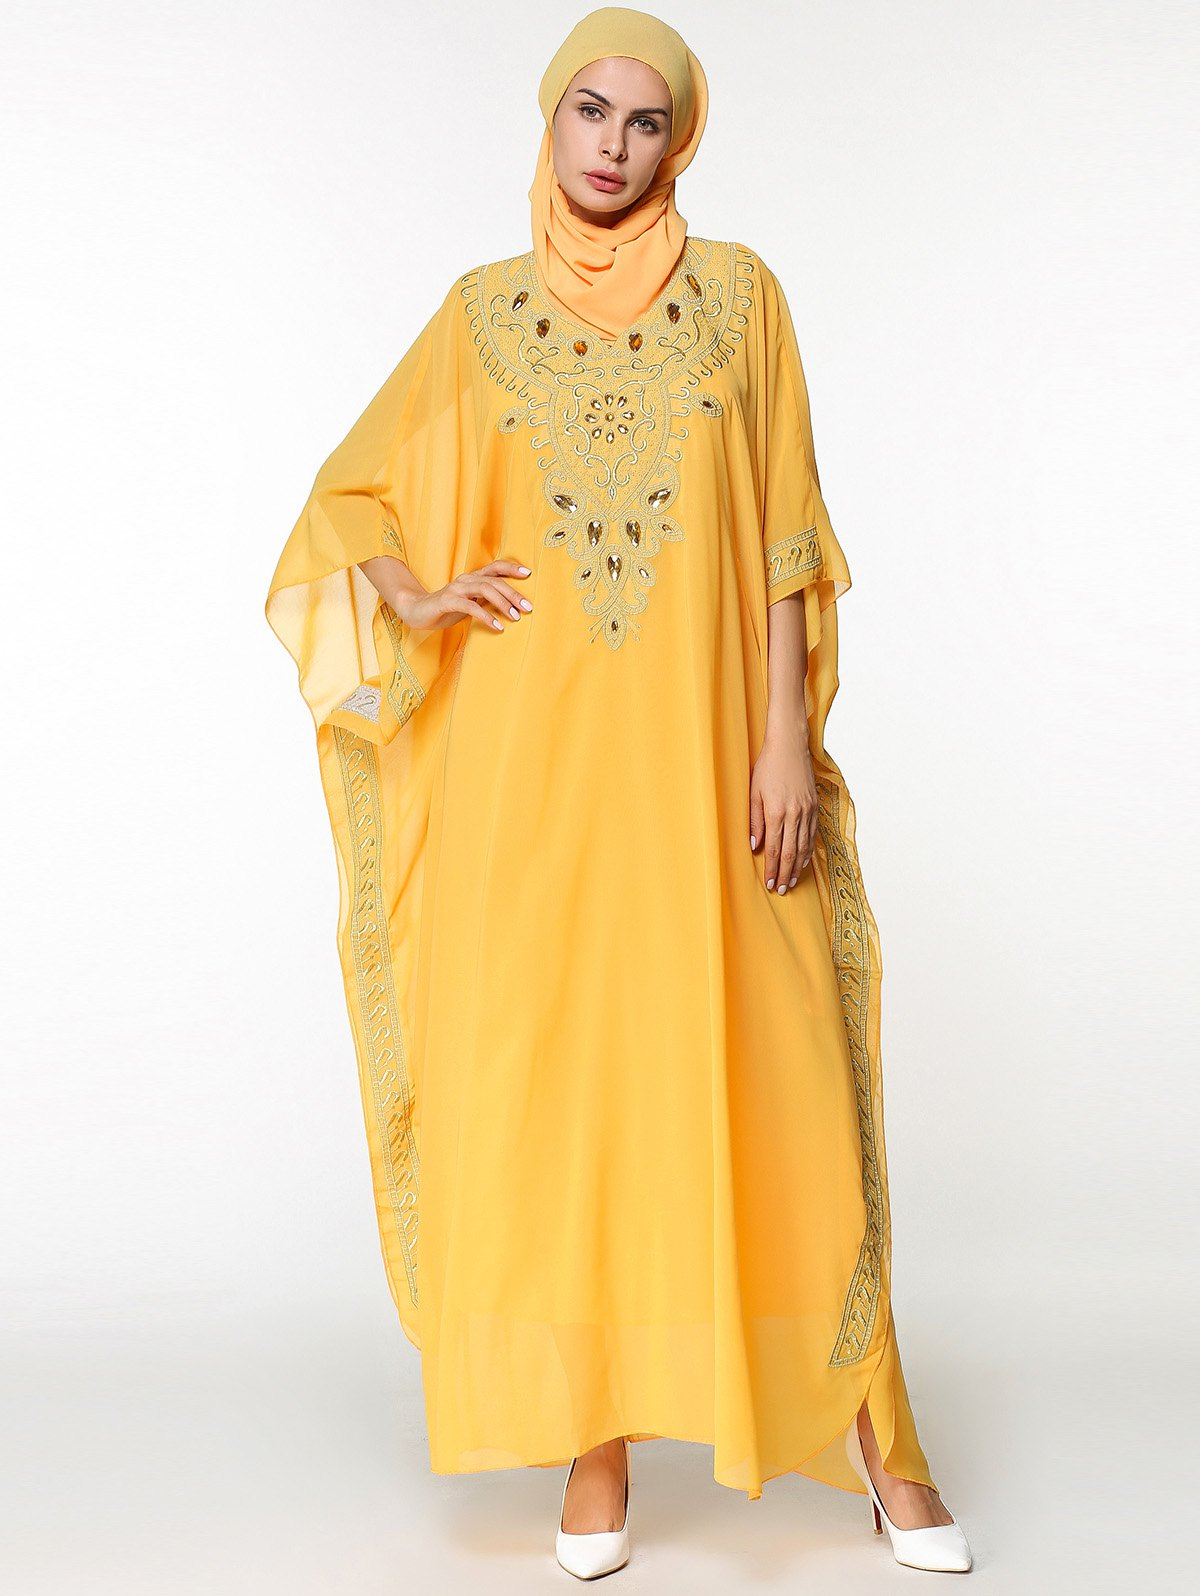 Shops Ankle Length Batwing Sleeve Chiffon Arabic Dress